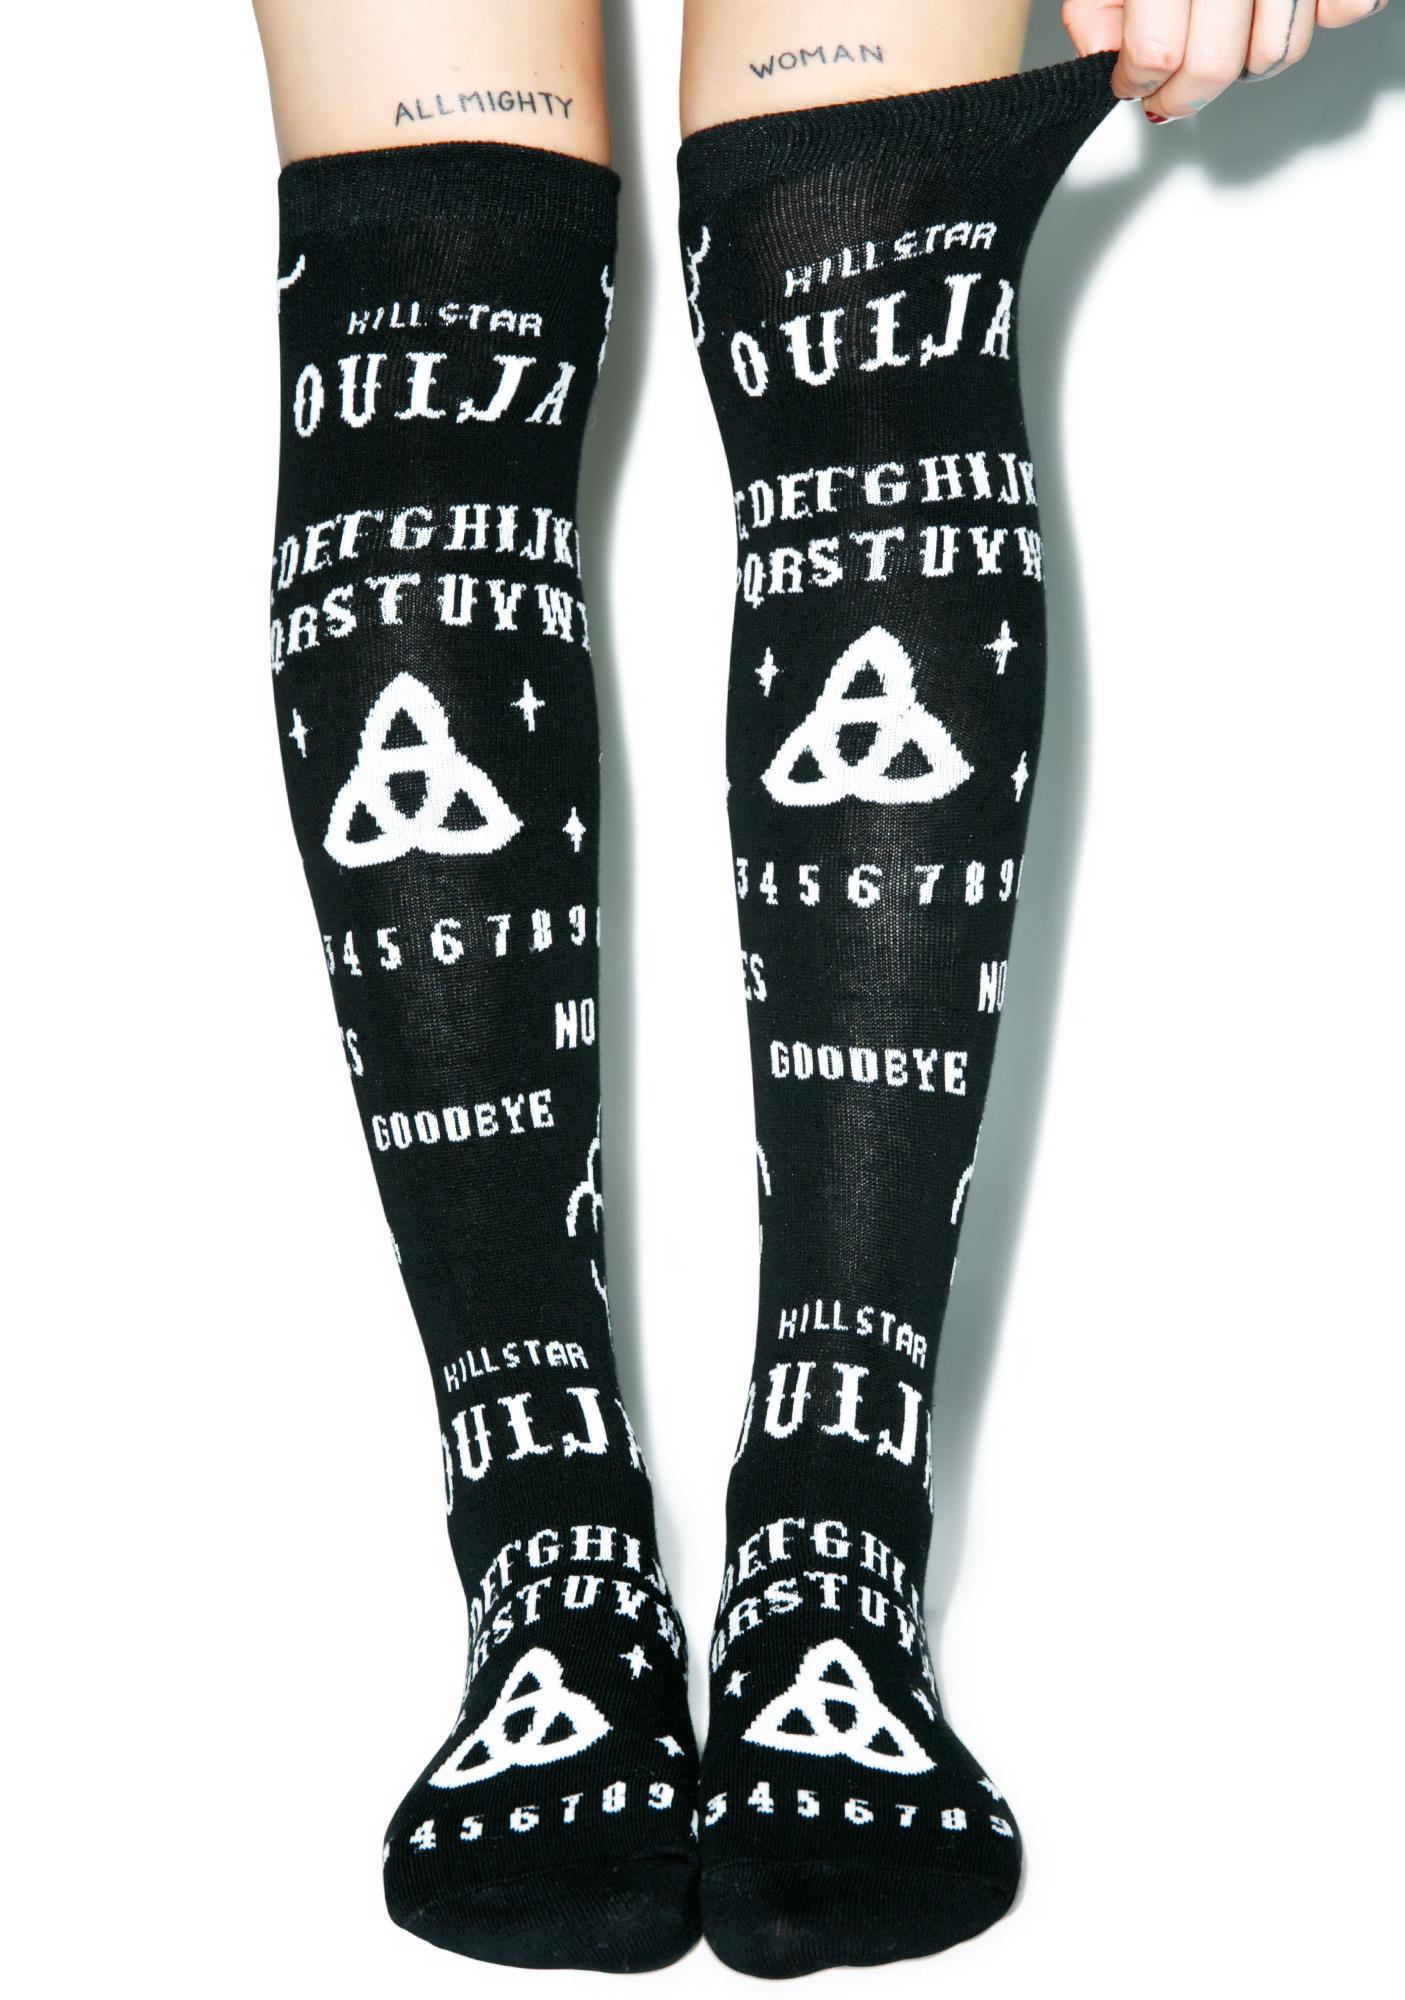 Killstar Ouija Over The Knee Socks